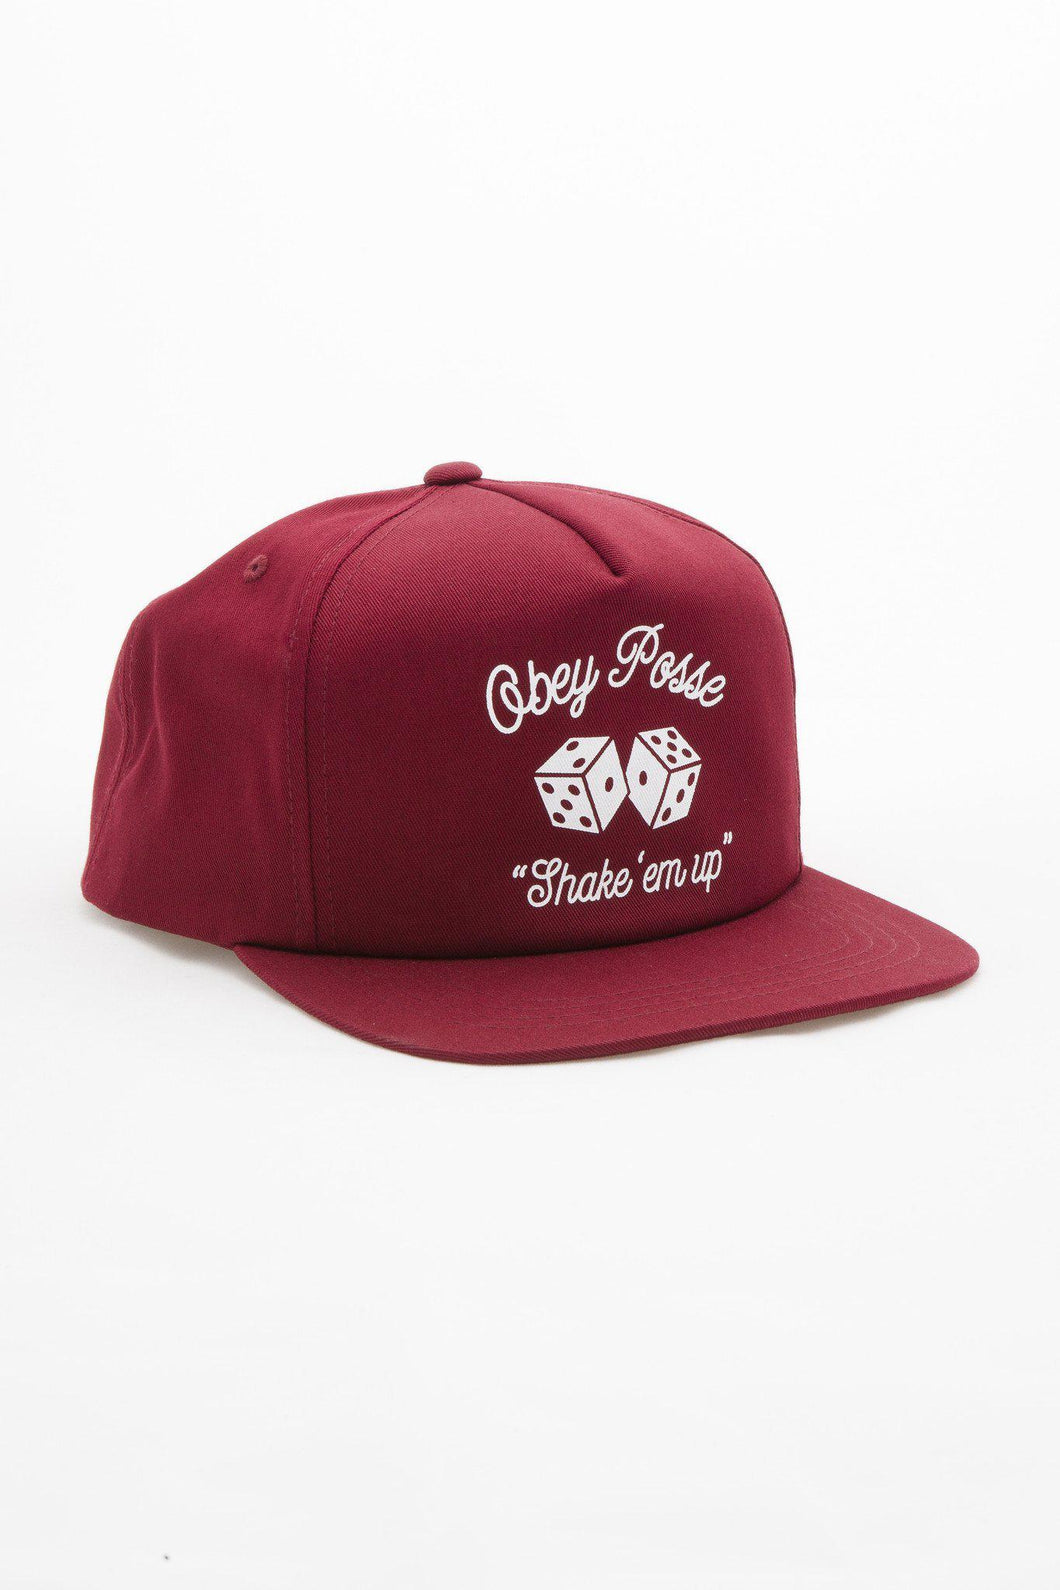 OBEY DICE SNAPBACK BURGUNDY-The Collateral